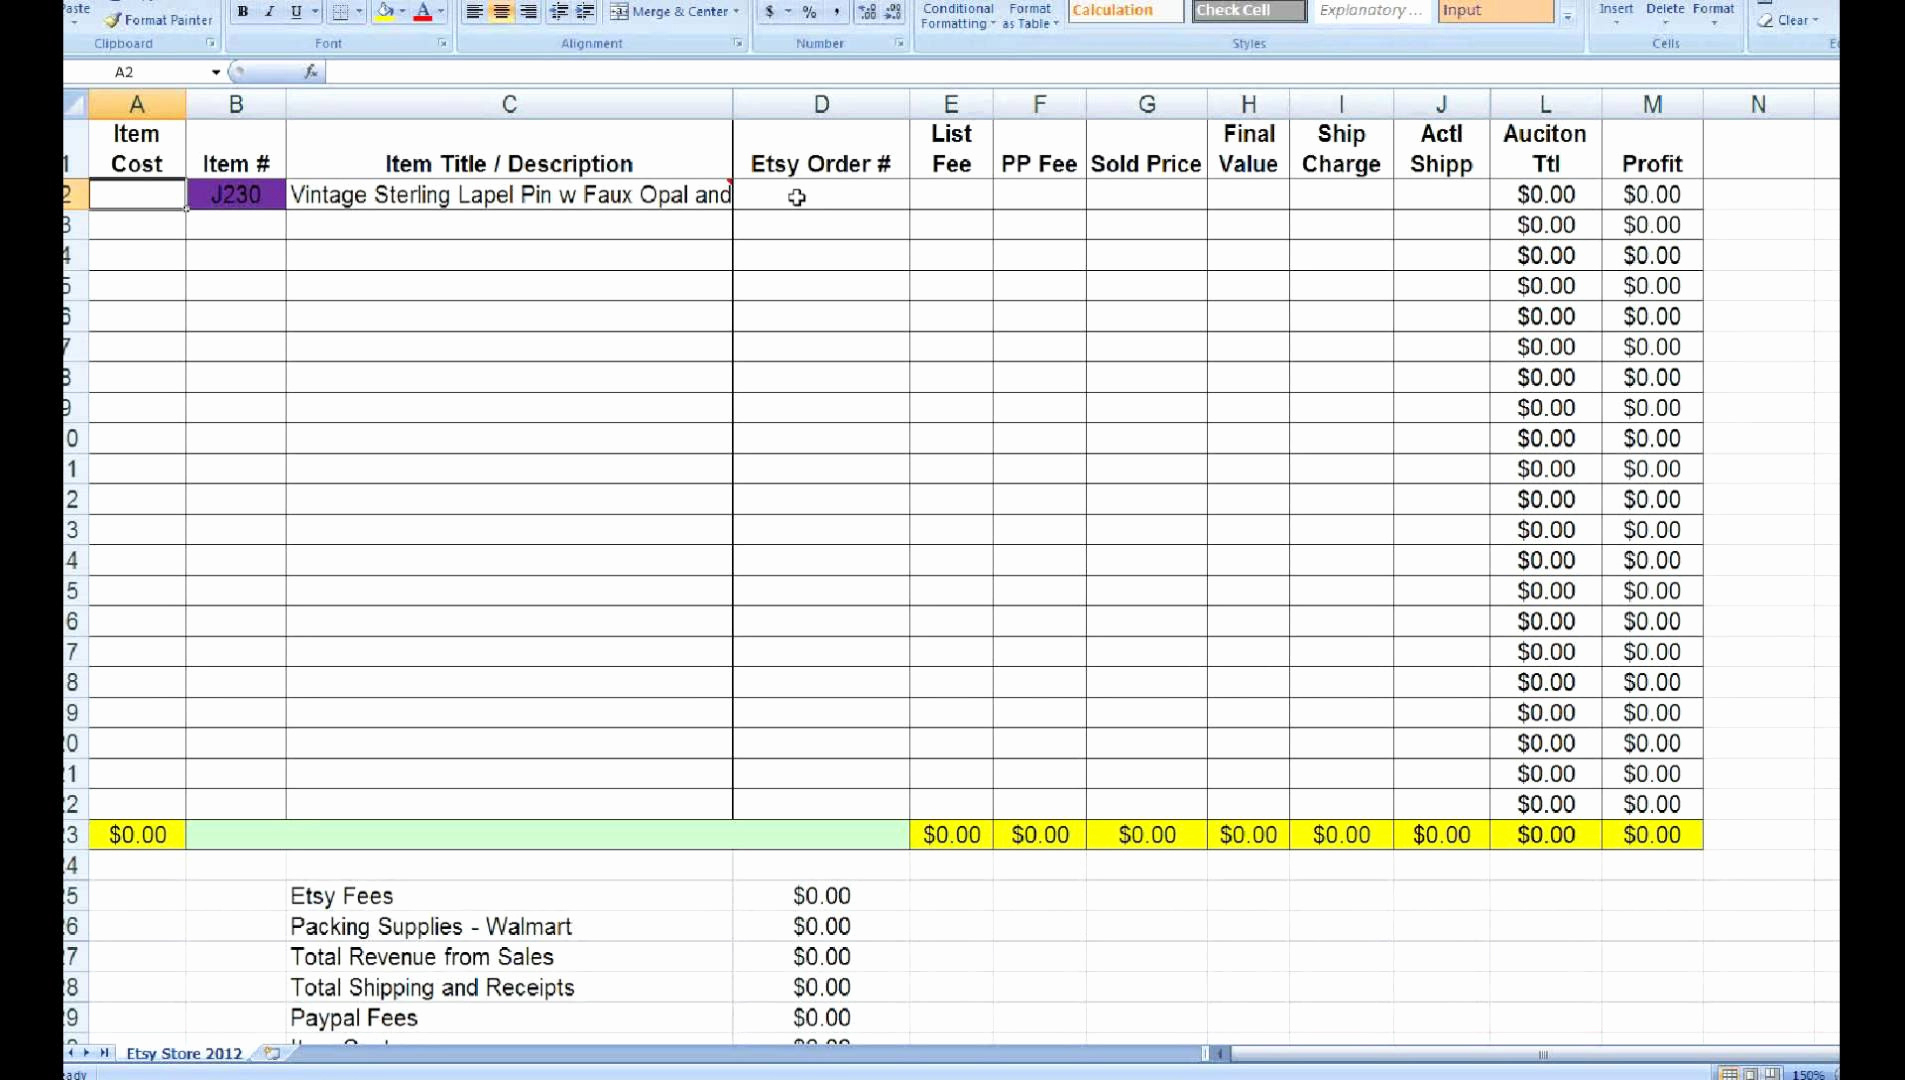 Free Reserve Study Spreadsheet Pertaining To Free Reserve Study Spreadsheet – Spreadsheet Collections